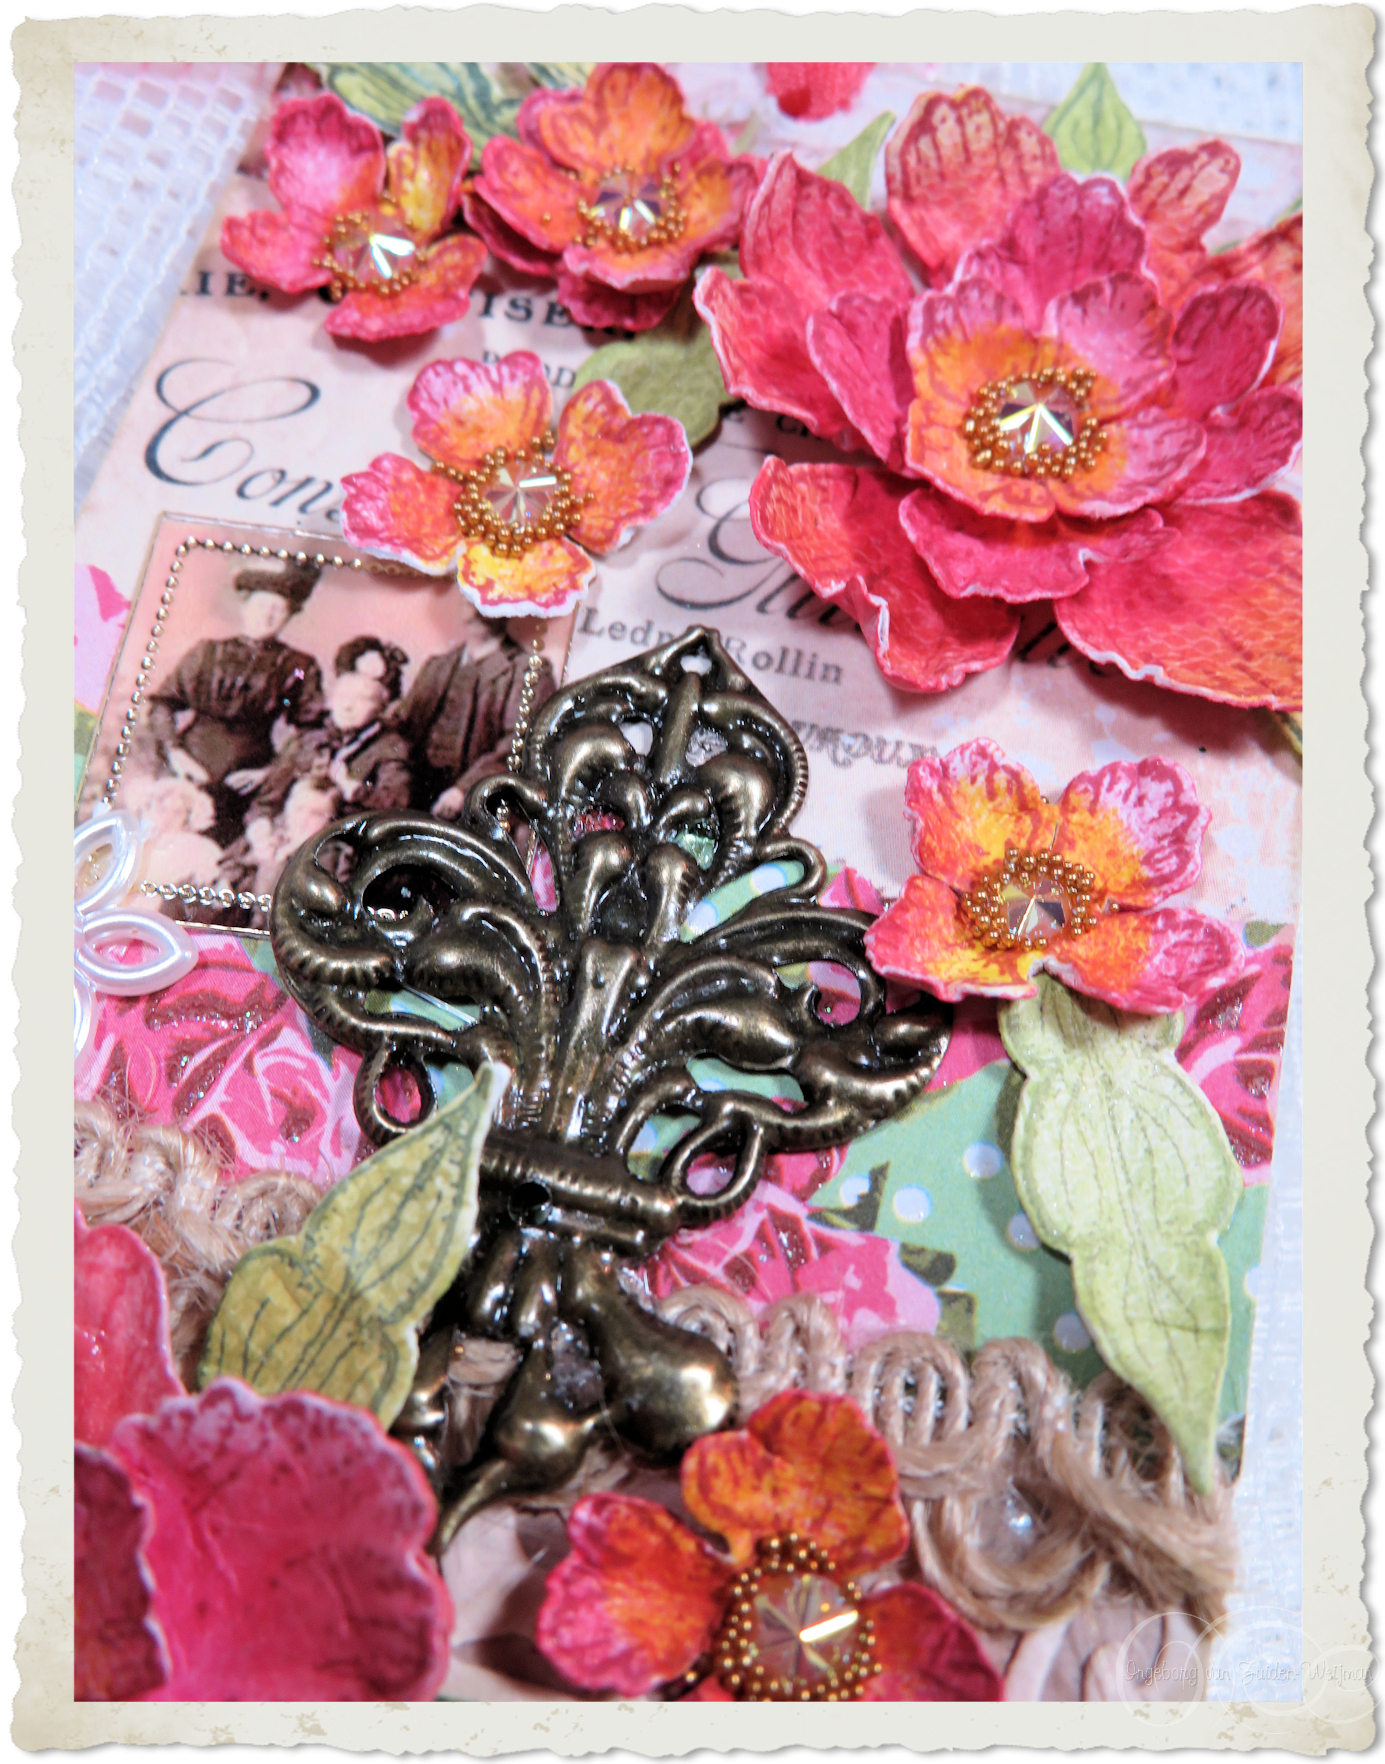 Details of heartfelt creations peony flowers on handmade paper tag